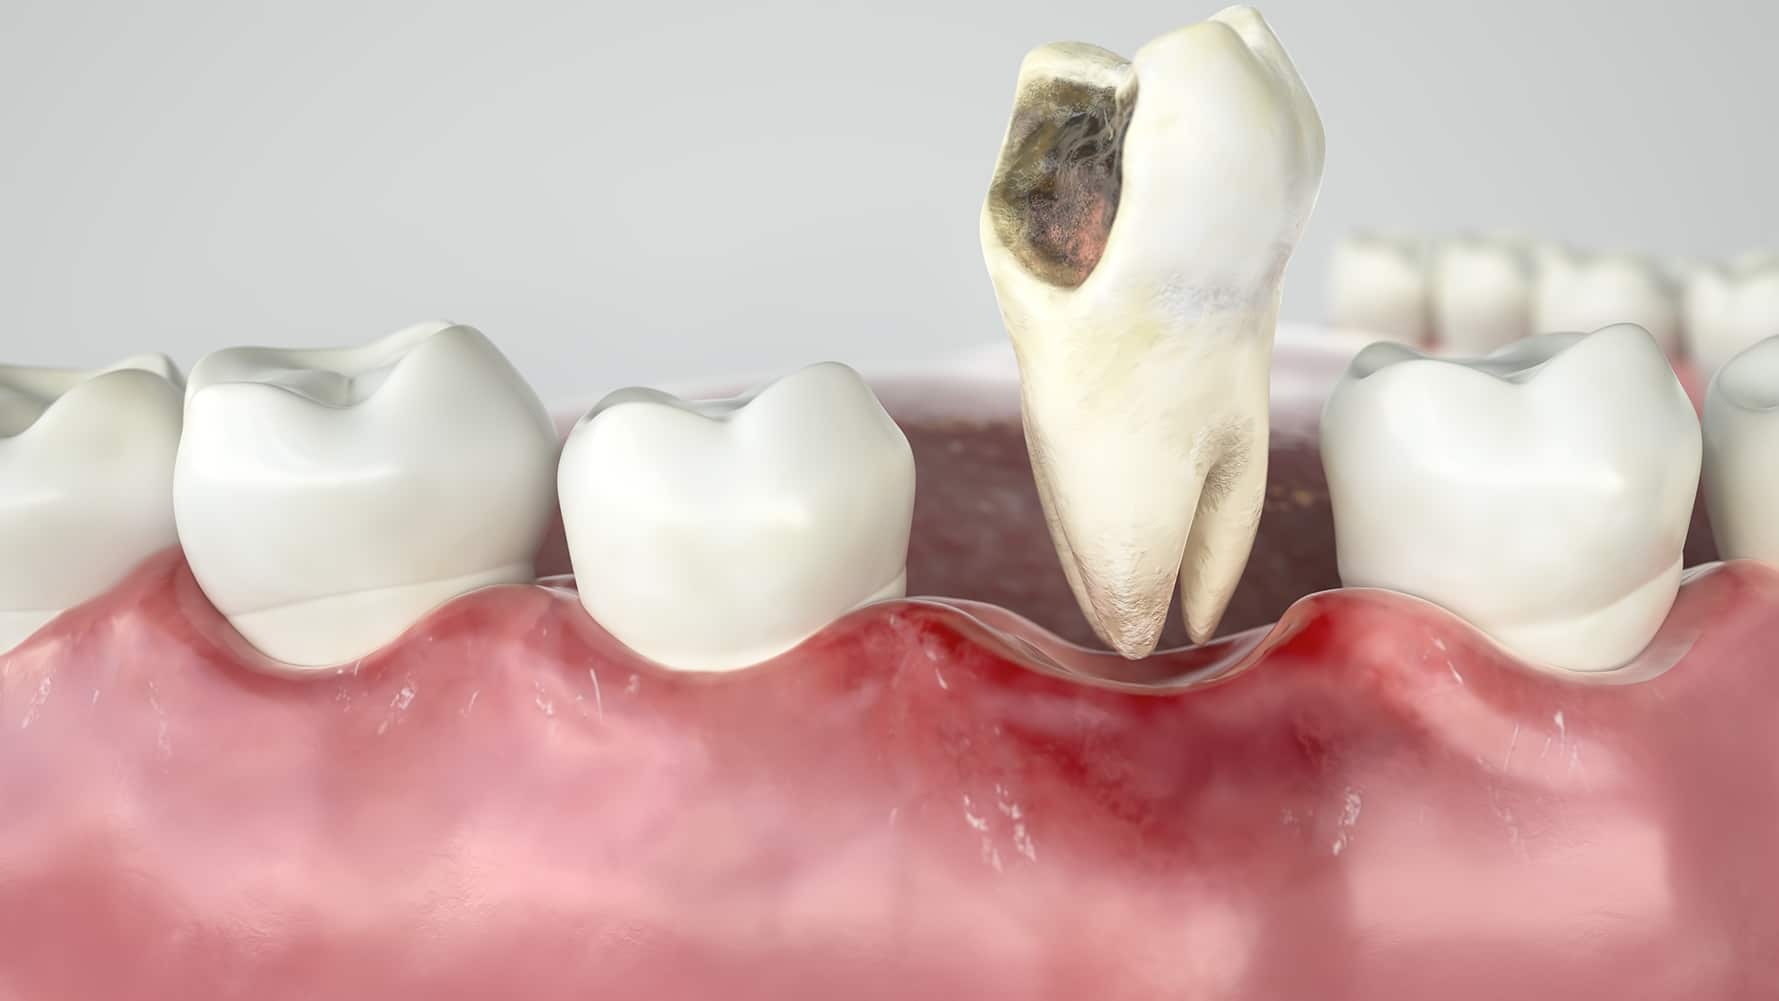 Tooth Extractions In Houston Tx Fms Dental Emergency Dentist Houston